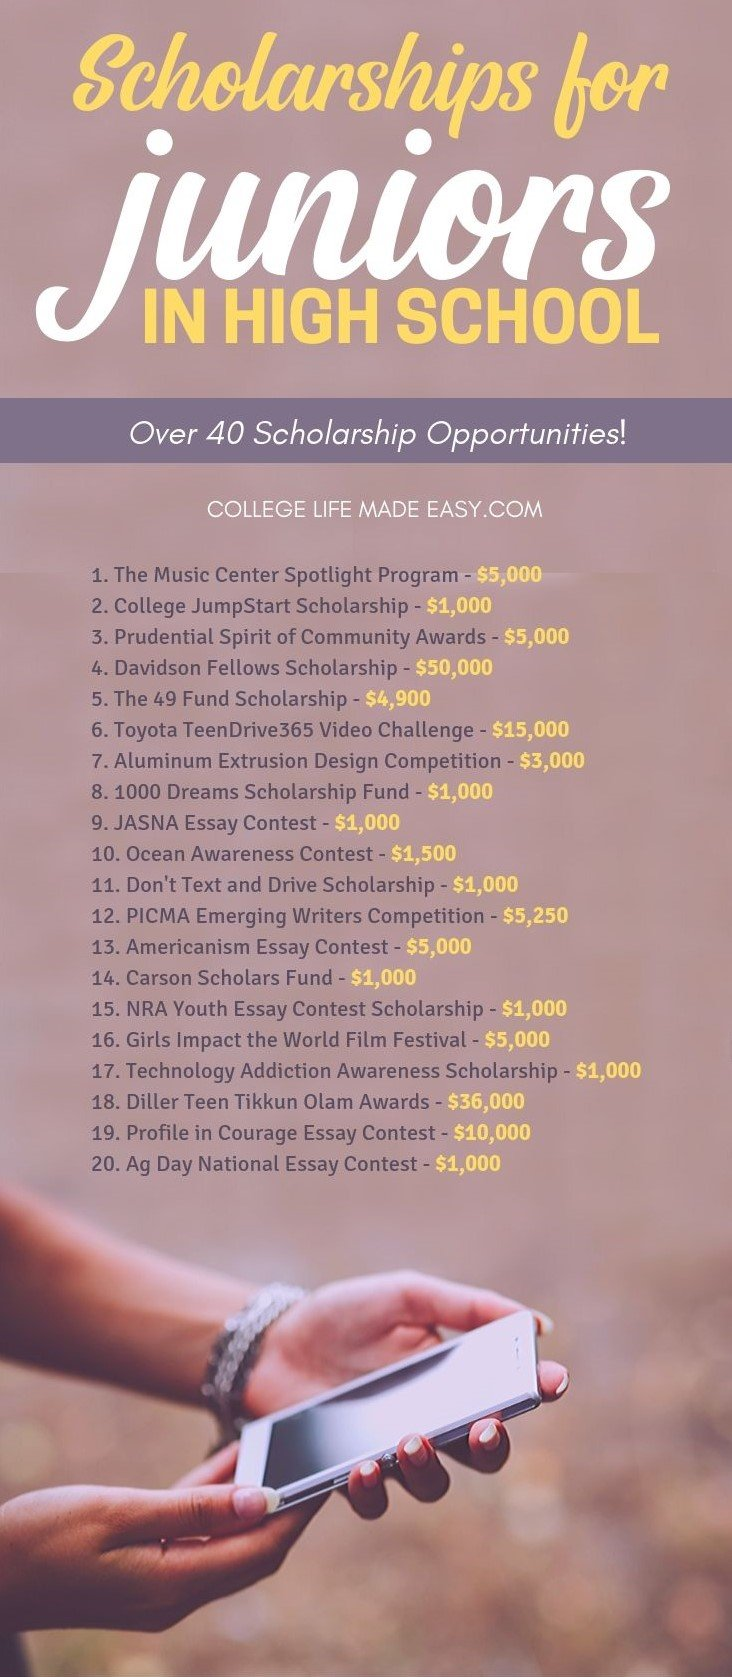 A list of scholarships that high school students need to know about! More than 40 college scholarships for juniors in high school, click to see them all and to start applying